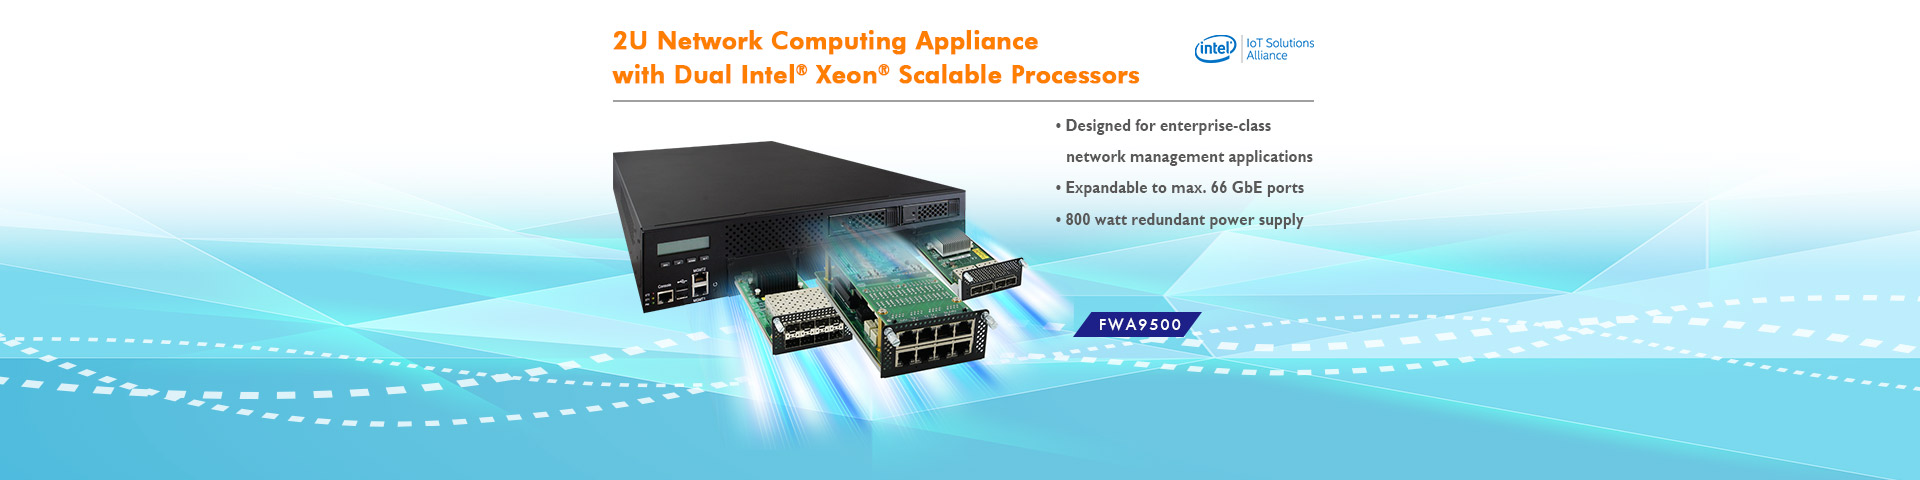 FWA9500 - 2U Network Computing Appliance with Dual Intel® Xeon® Scalable Processors